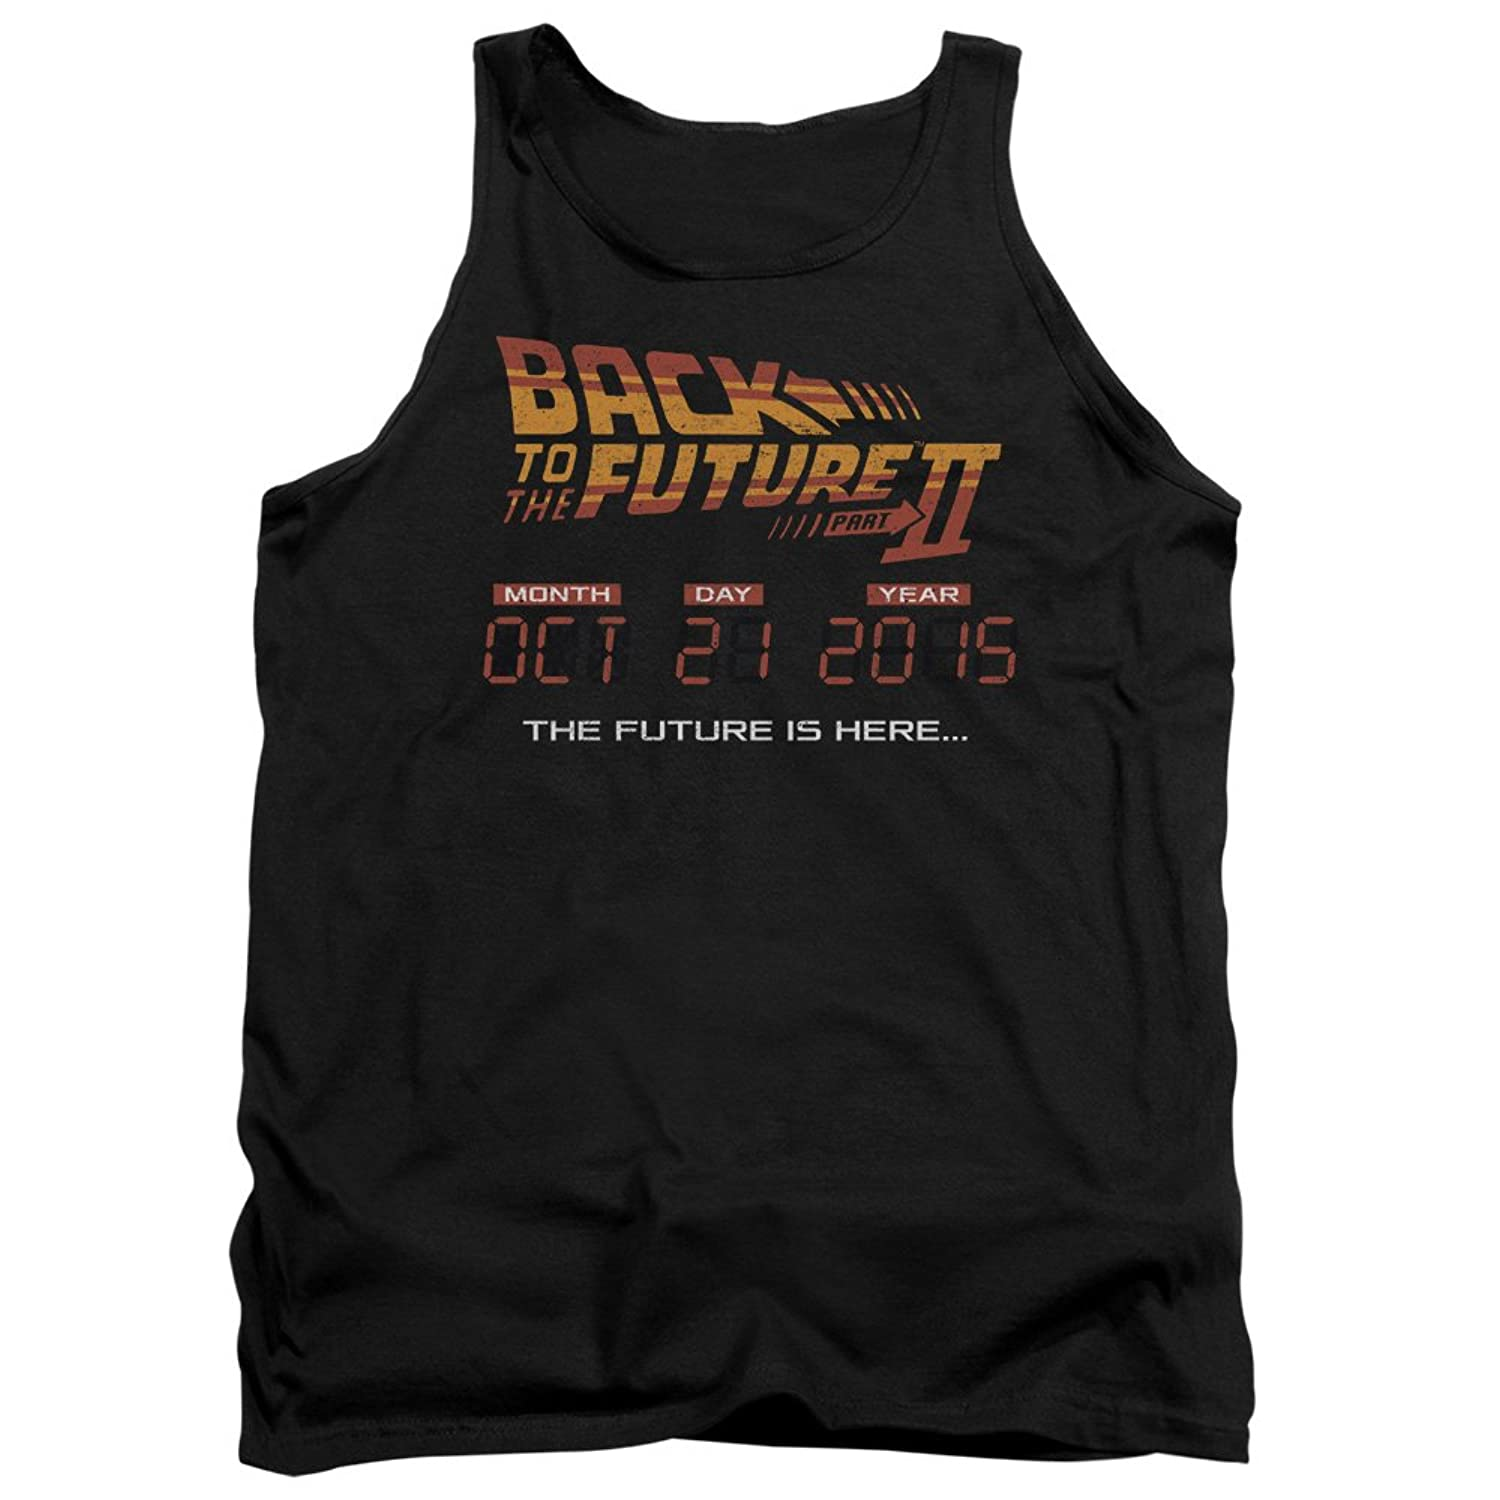 Back To The Future II Sci-Fi Movie Future Is Here 10.21.15 Adult Tank Top Shirt